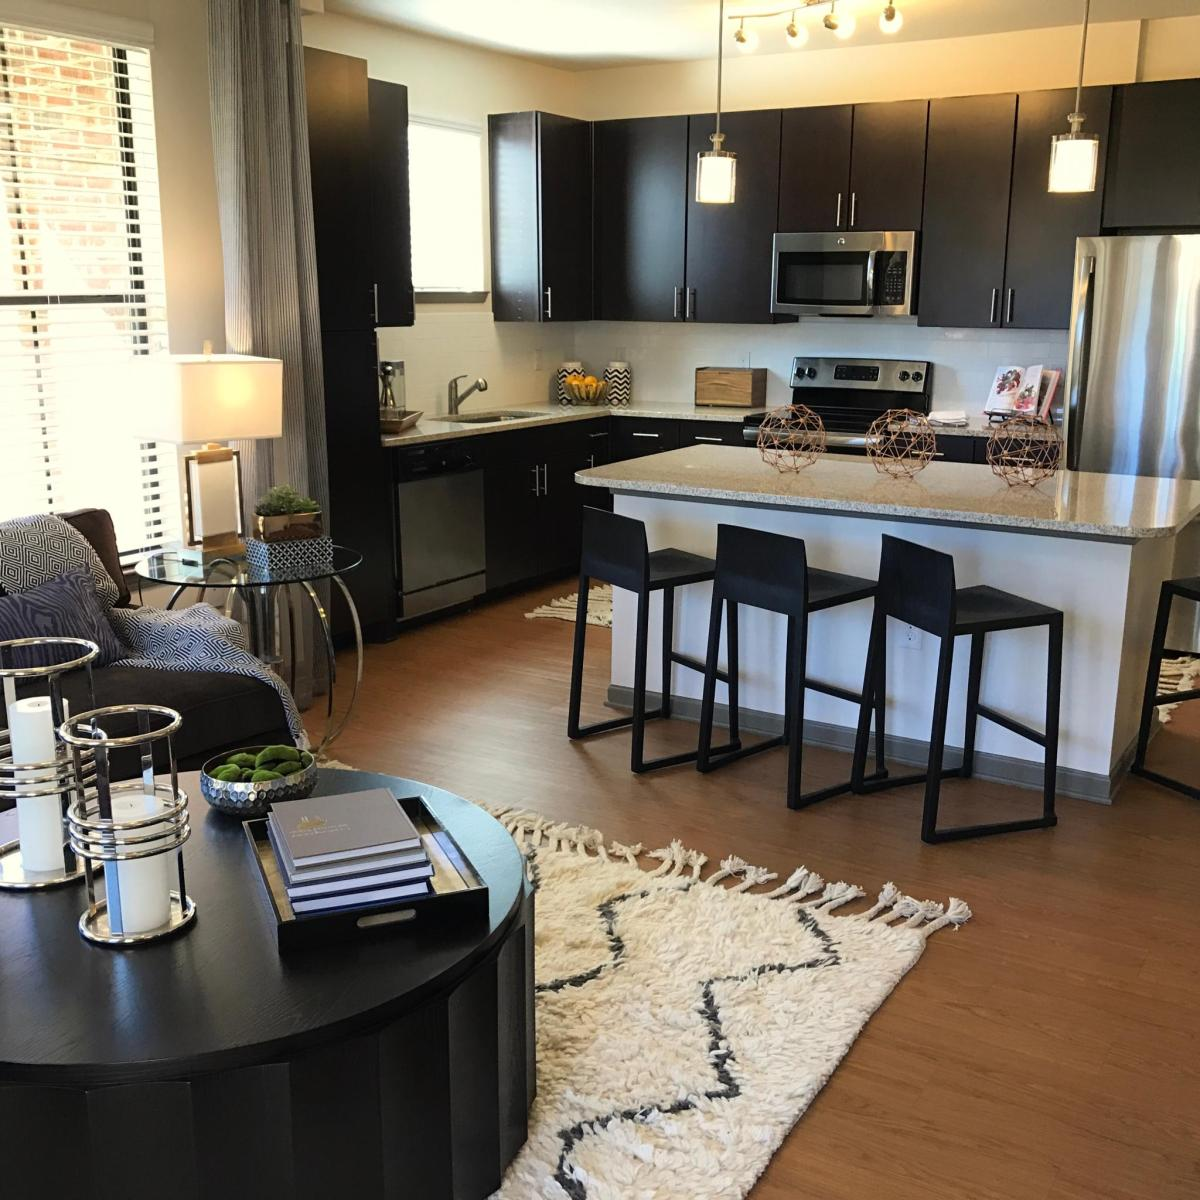 Apartments Listing: Velo Verdae Apartments At 205 Verdae Boulevard, Greenville